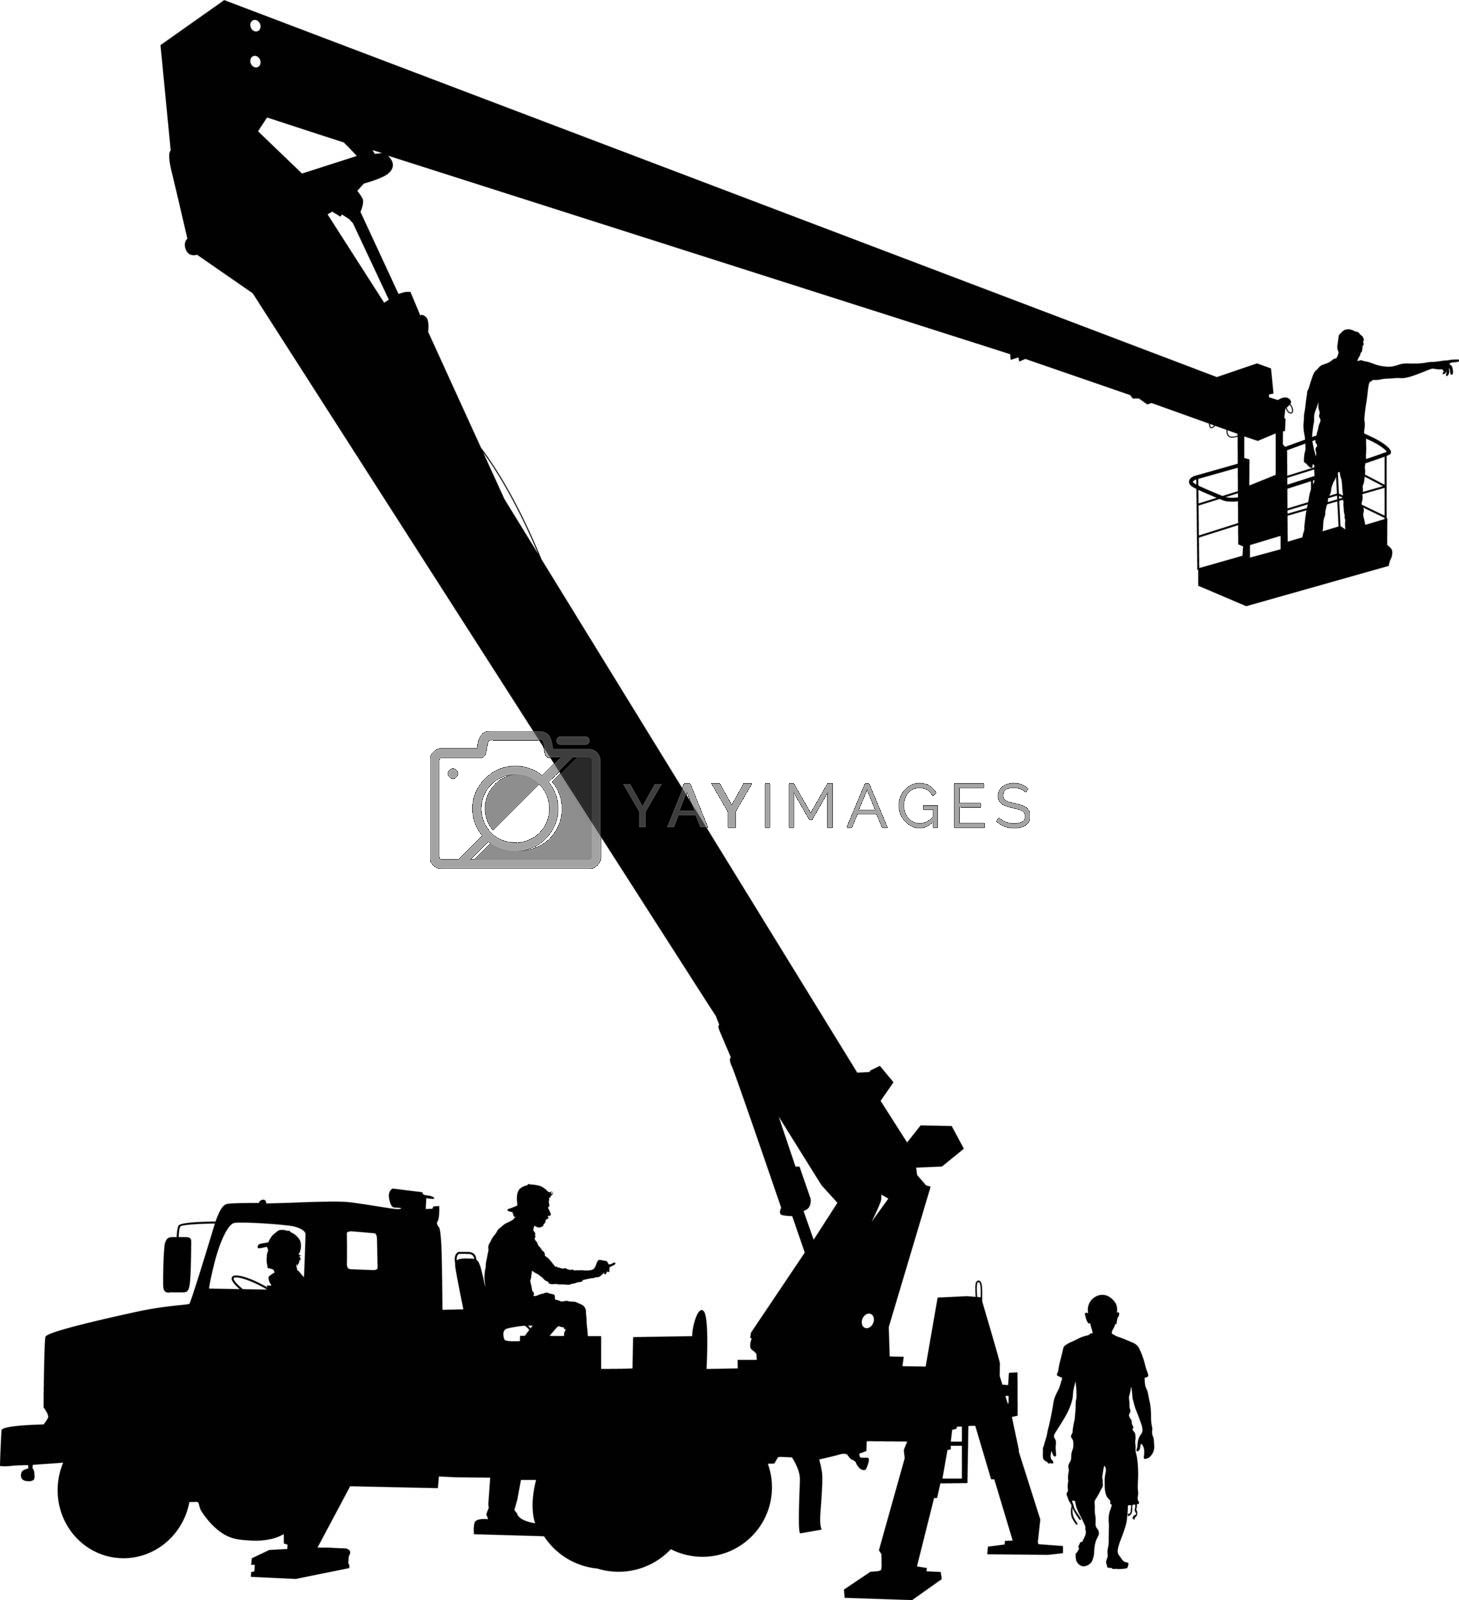 Electrician, making repairs at a power pole. Vector illustration.